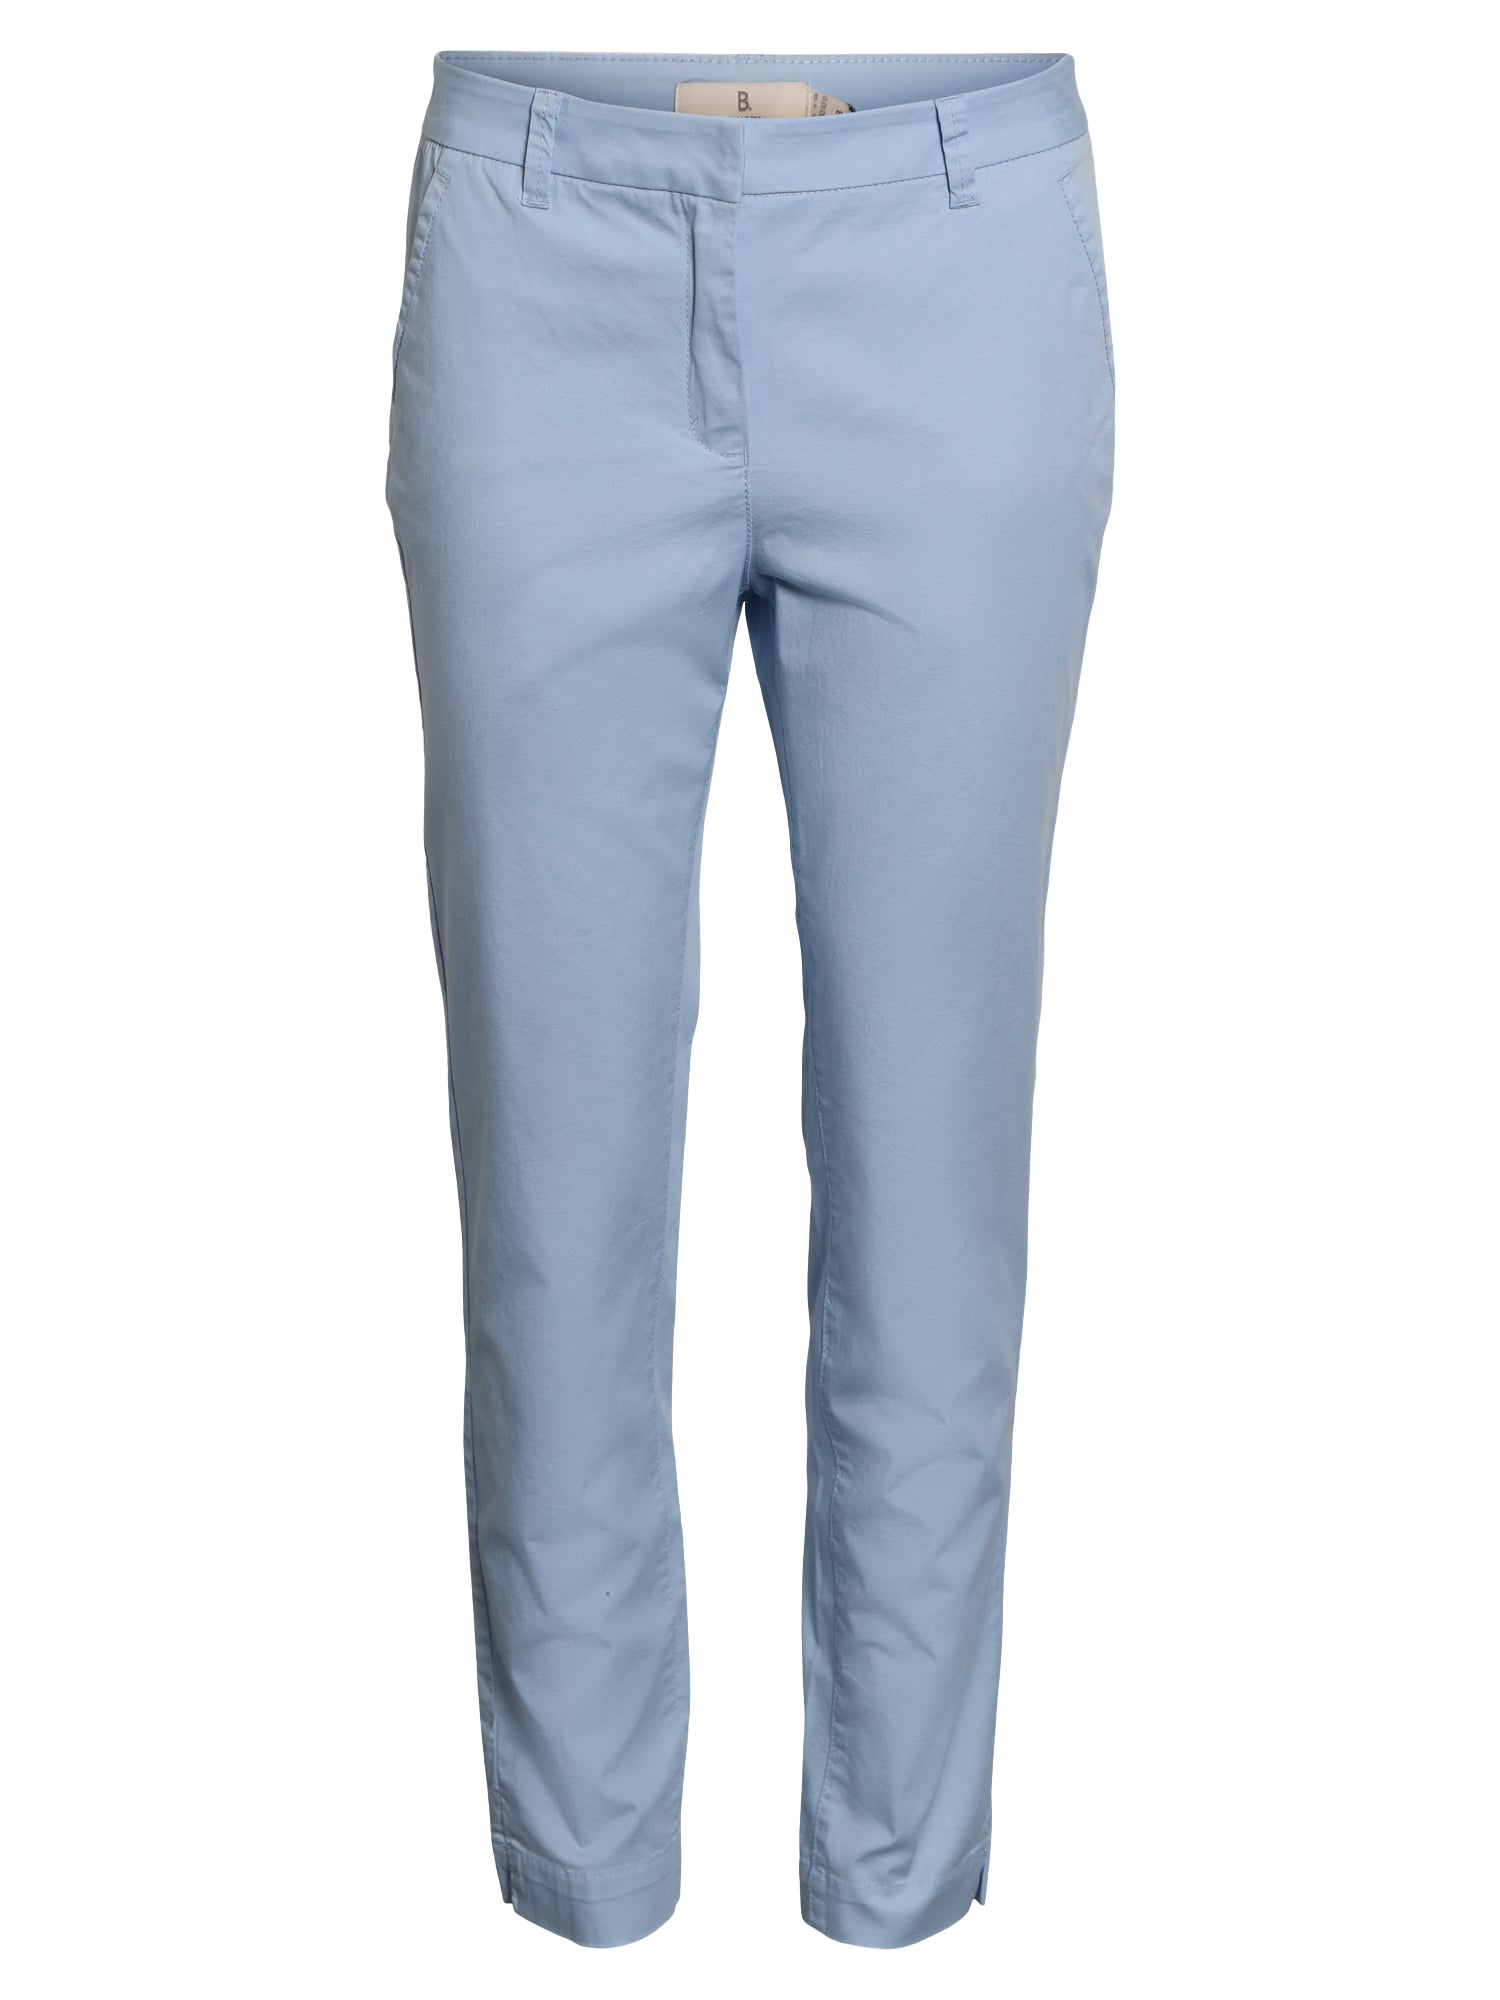 Image of   Bukser - Chambray Blue